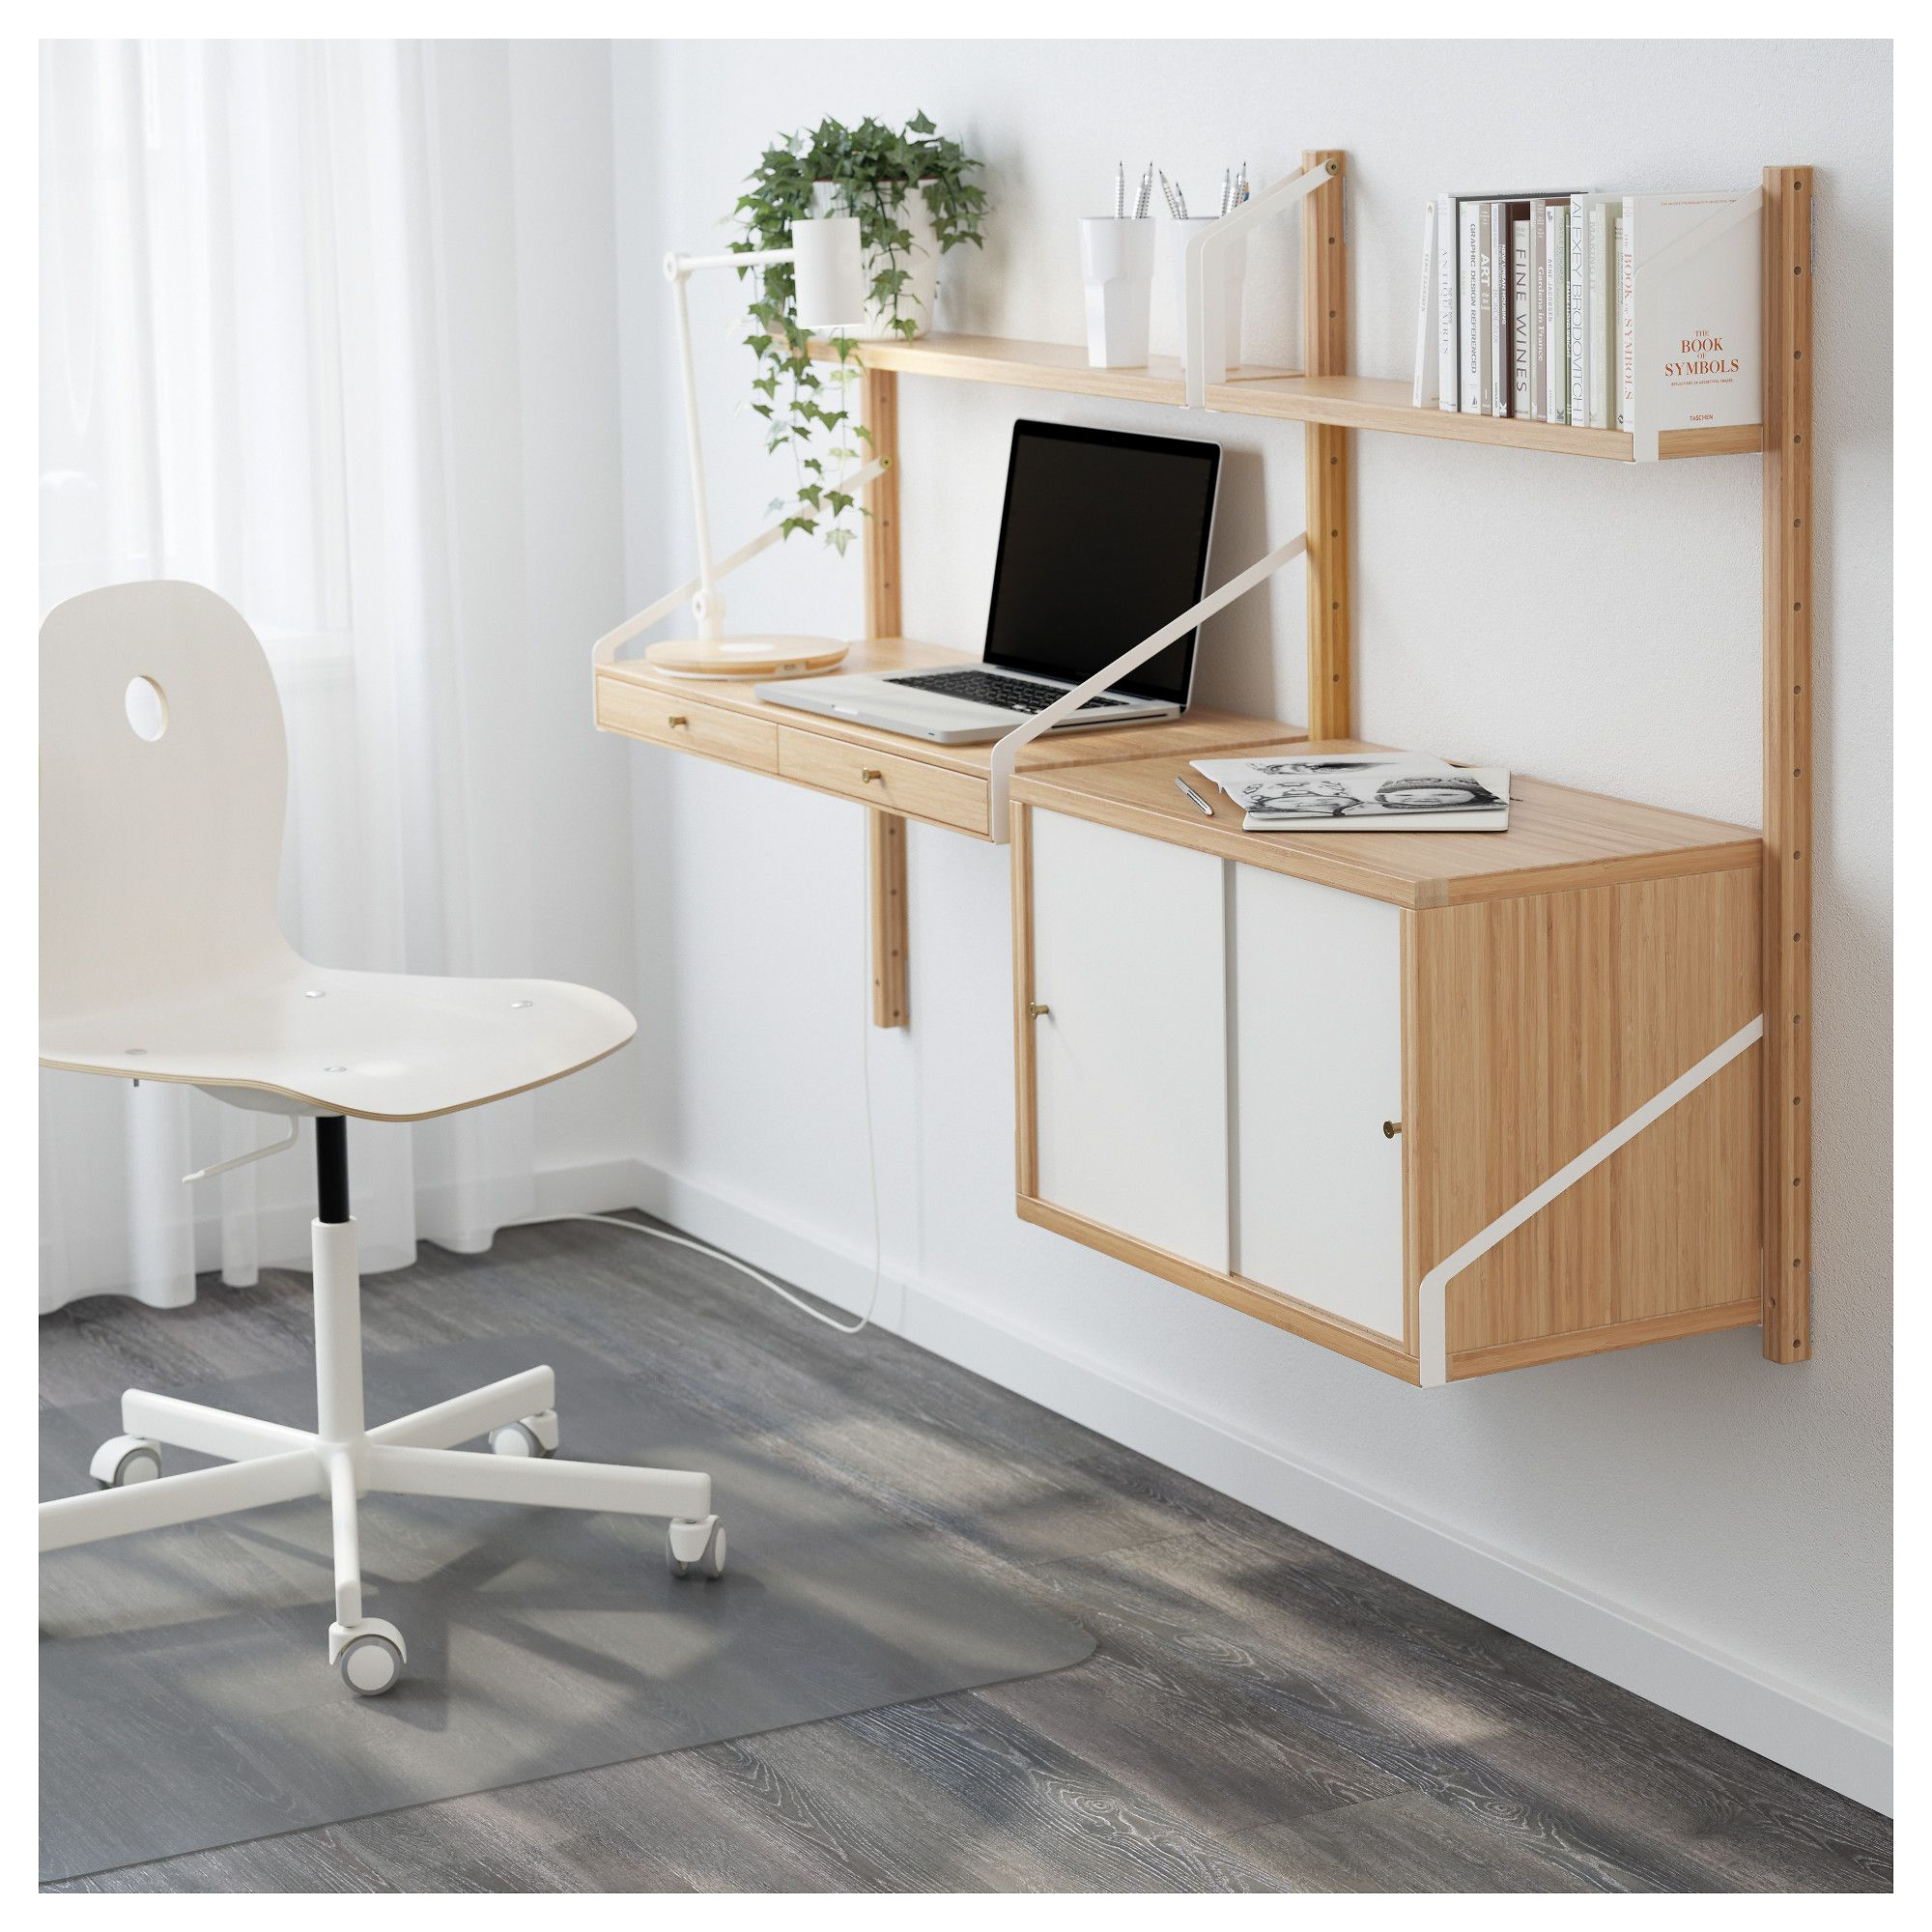 svalnäs wall mounted workspace combination bamboo white on wall mount id=54263